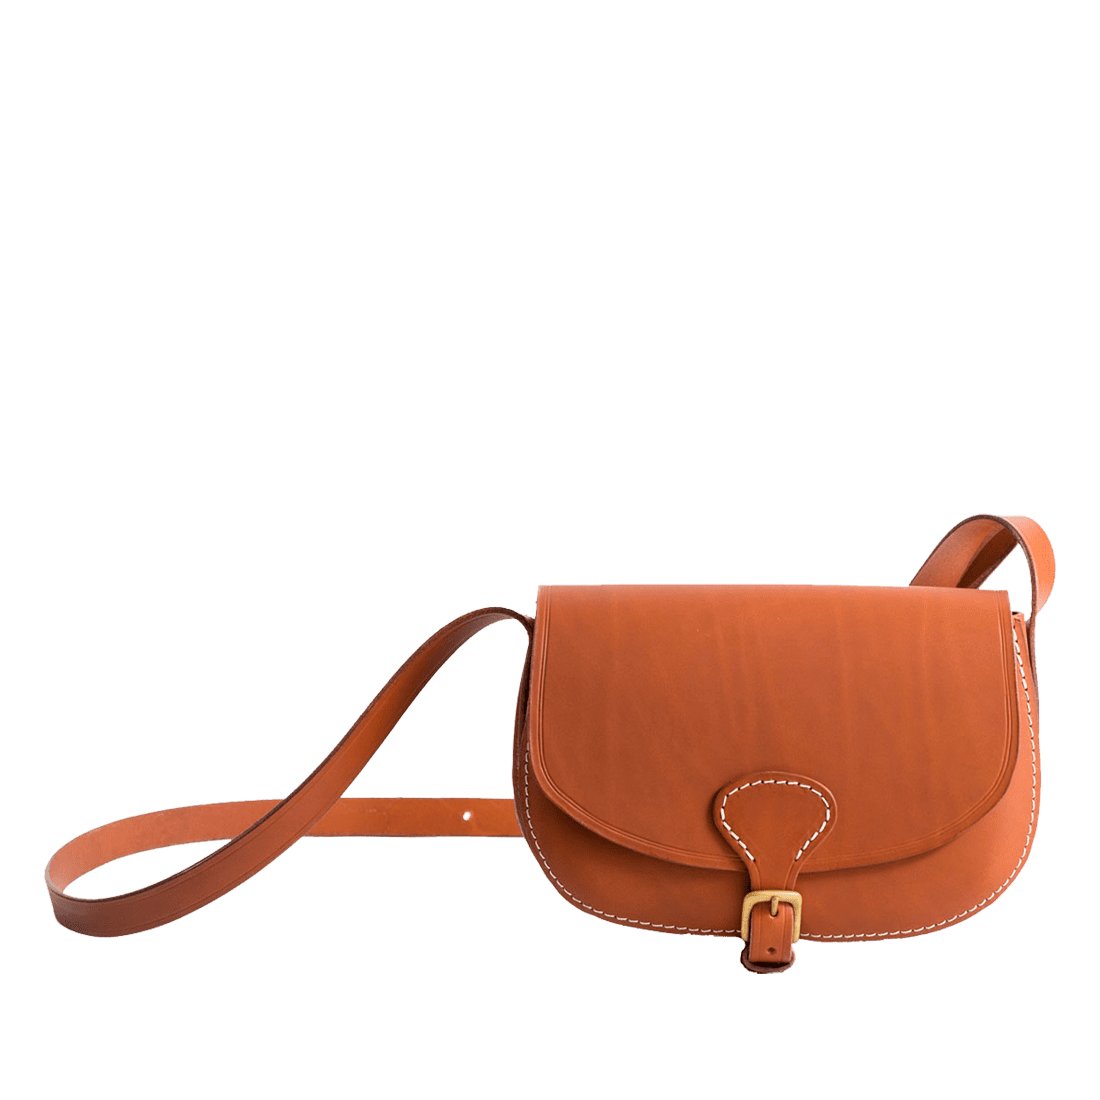 The Cartridge bag London tan